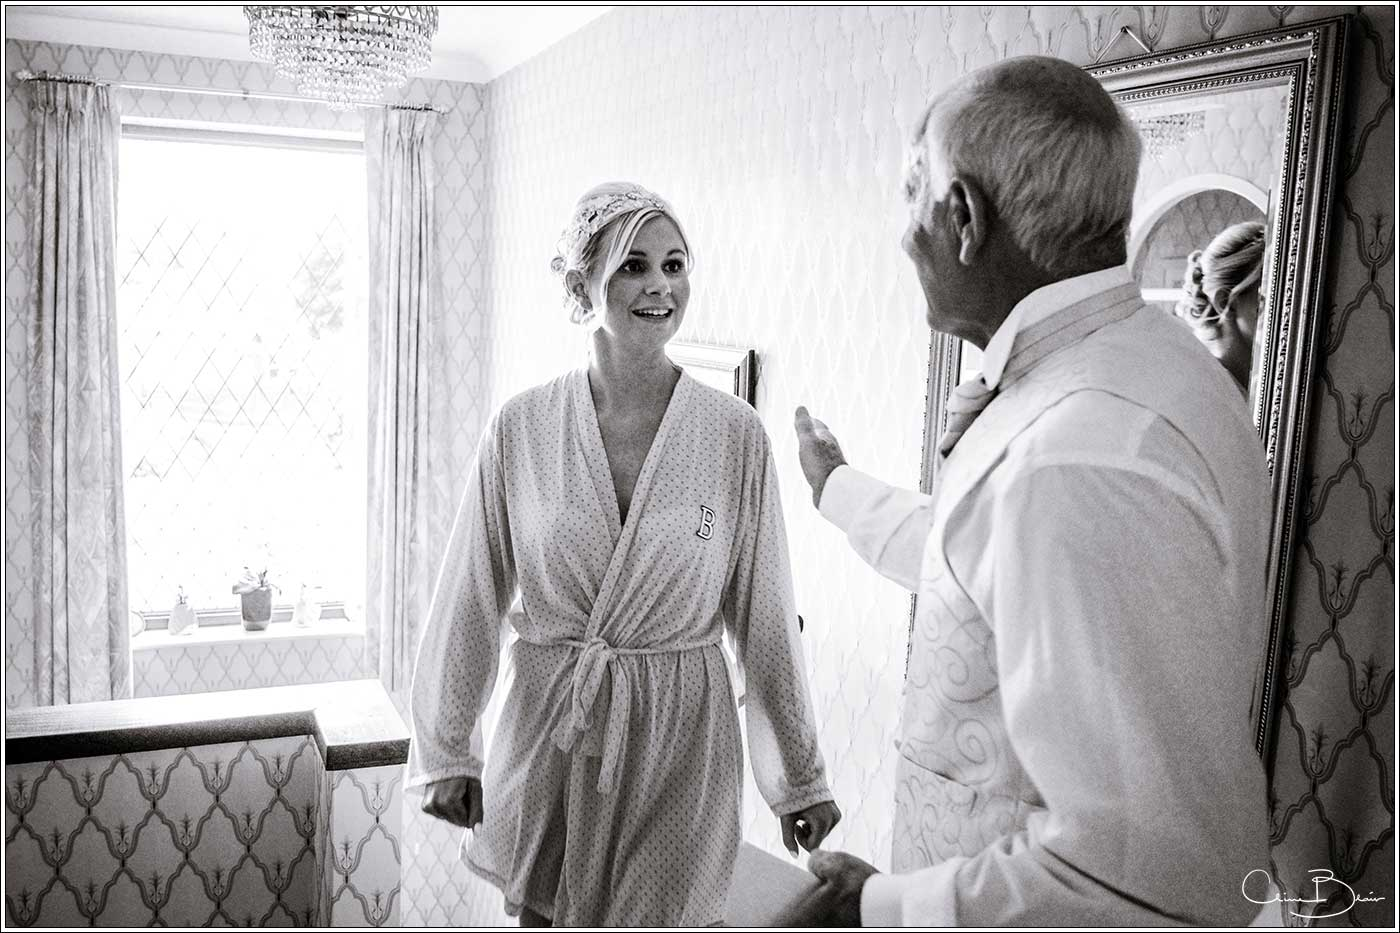 Coombe Abbey wedding photography showing father greeting his daughter before the wedding